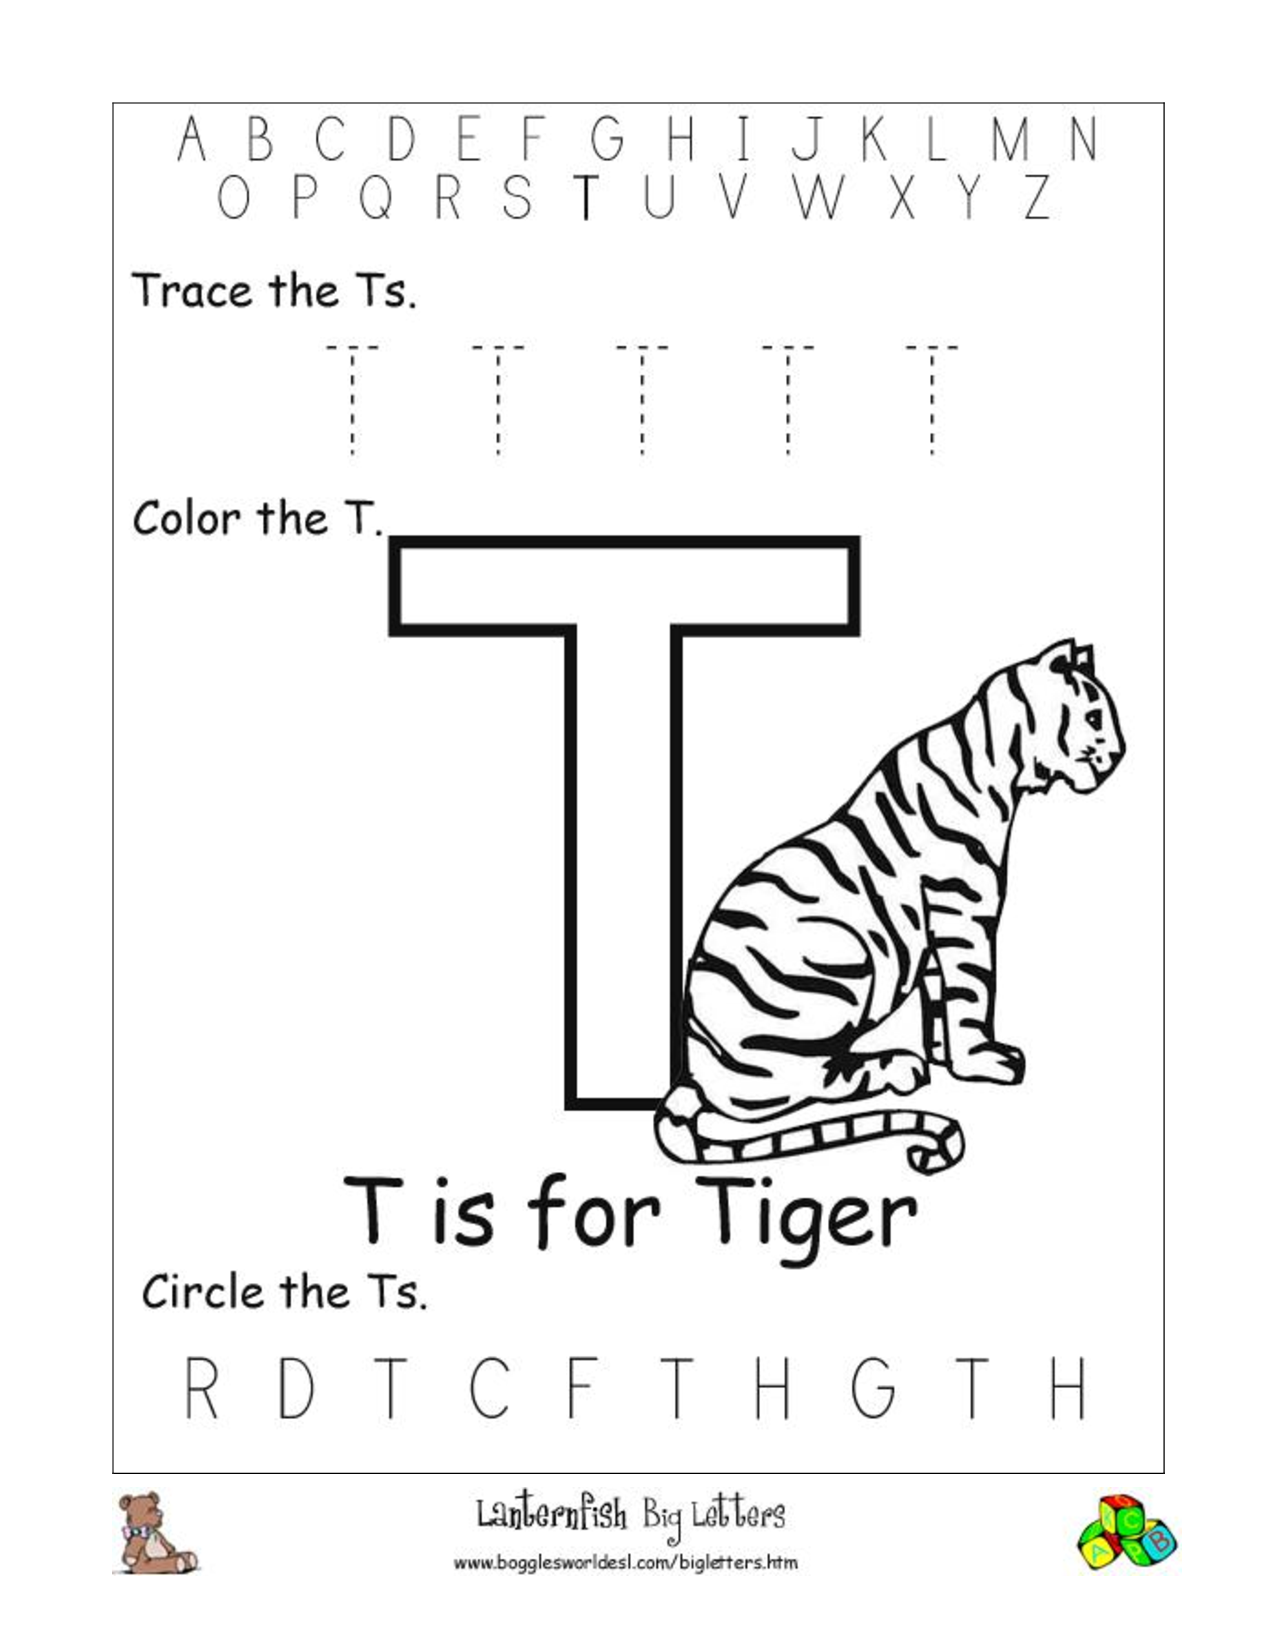 20 Learning the Letter T Worksheets | KittyBabyLove.com